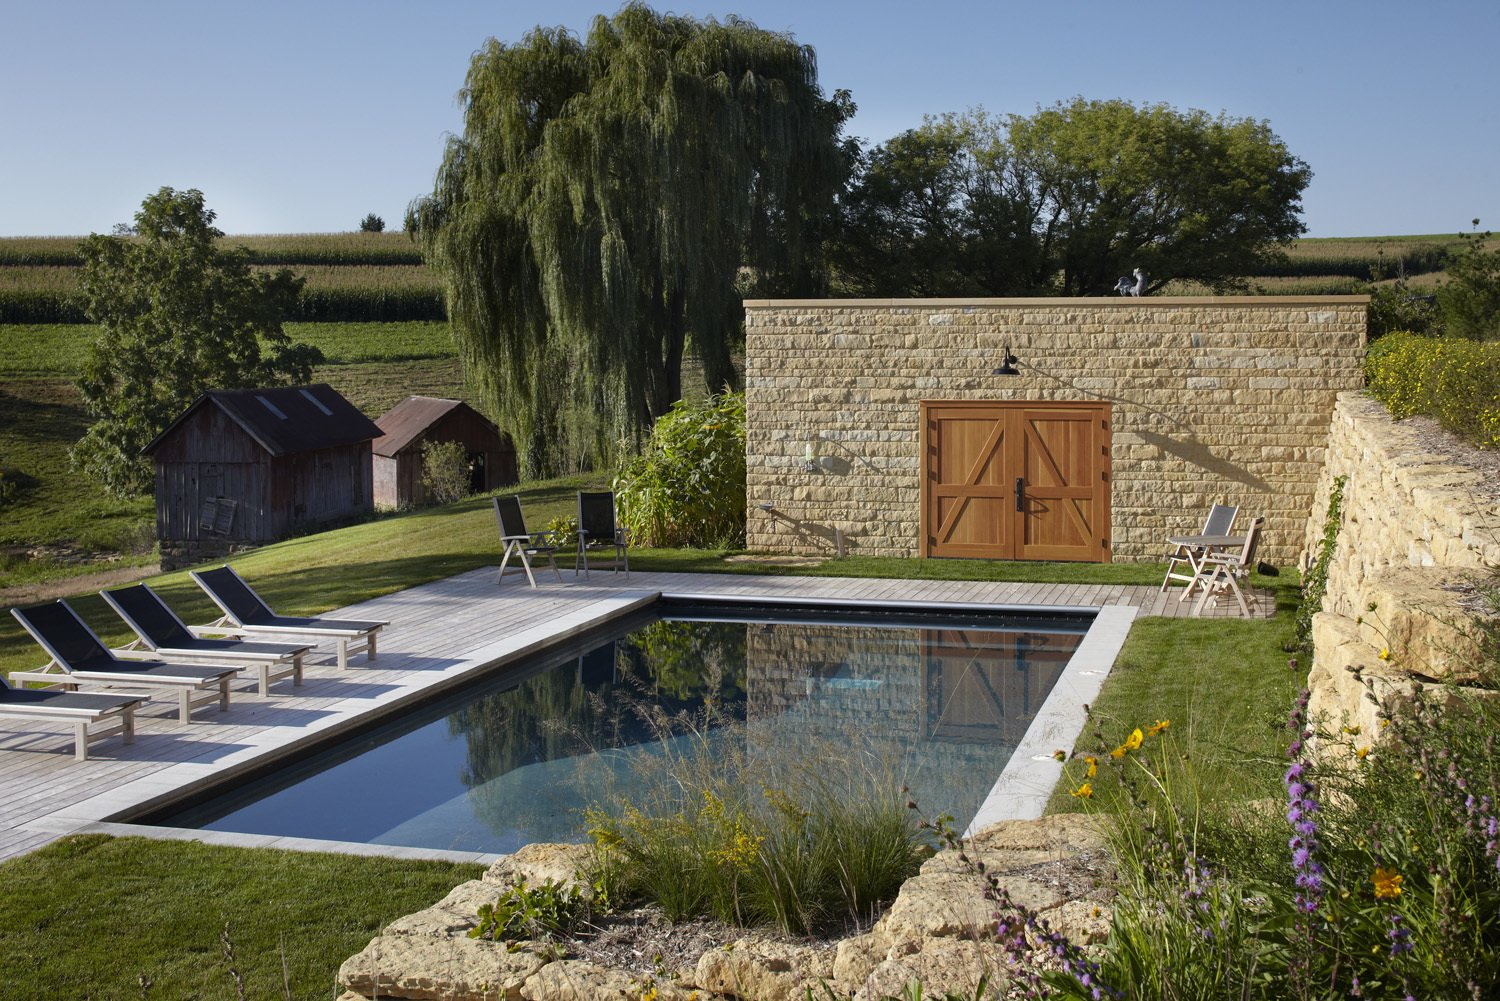 The old barn's foundation, re-stacked by a local stonemason, was reused as a rustic retaining wall for the pool area. The property also came with a corn crib and blacksmith shop as old as the barn, seen behind the pool, which are both used for storage now. St. Tropez chaises from Kingsley-Bate line the pool. Tagged: Outdoor, Wood Patio, Porch, Deck, Large Patio, Porch, Deck, Swimming Pools, Tubs, Shower, Large Pools, Tubs, Shower, and Concrete Pools, Tubs, Shower.  A Family Salvages an 1880s Barn to Create Their Nearly-Net Zero Escape by Caroline Wallis